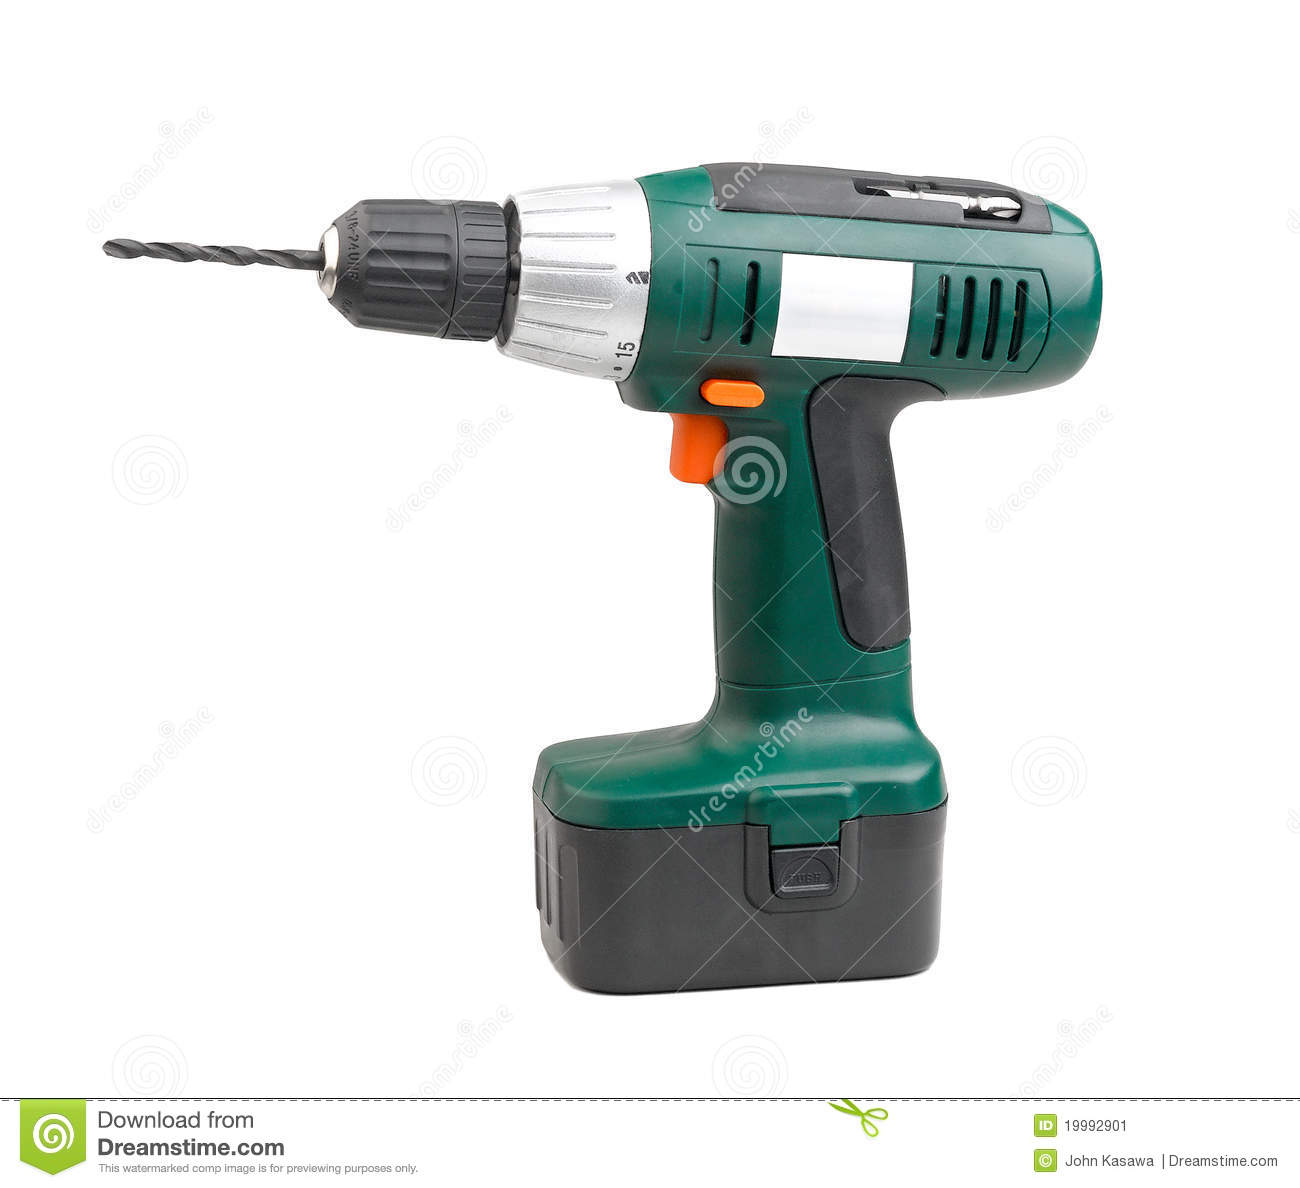 Bosch Gof1600ce 1 2in Router 240v P42891 furthermore B402370 besides Gymnastics Equipment Olympics 3264x2448 71491 additionally Makita Ddf484z 18v Cordless Brushless Drill Driver Body Only P77645 furthermore Stock Image Cordless Driller Machine Image19992901. on cordless drill machine